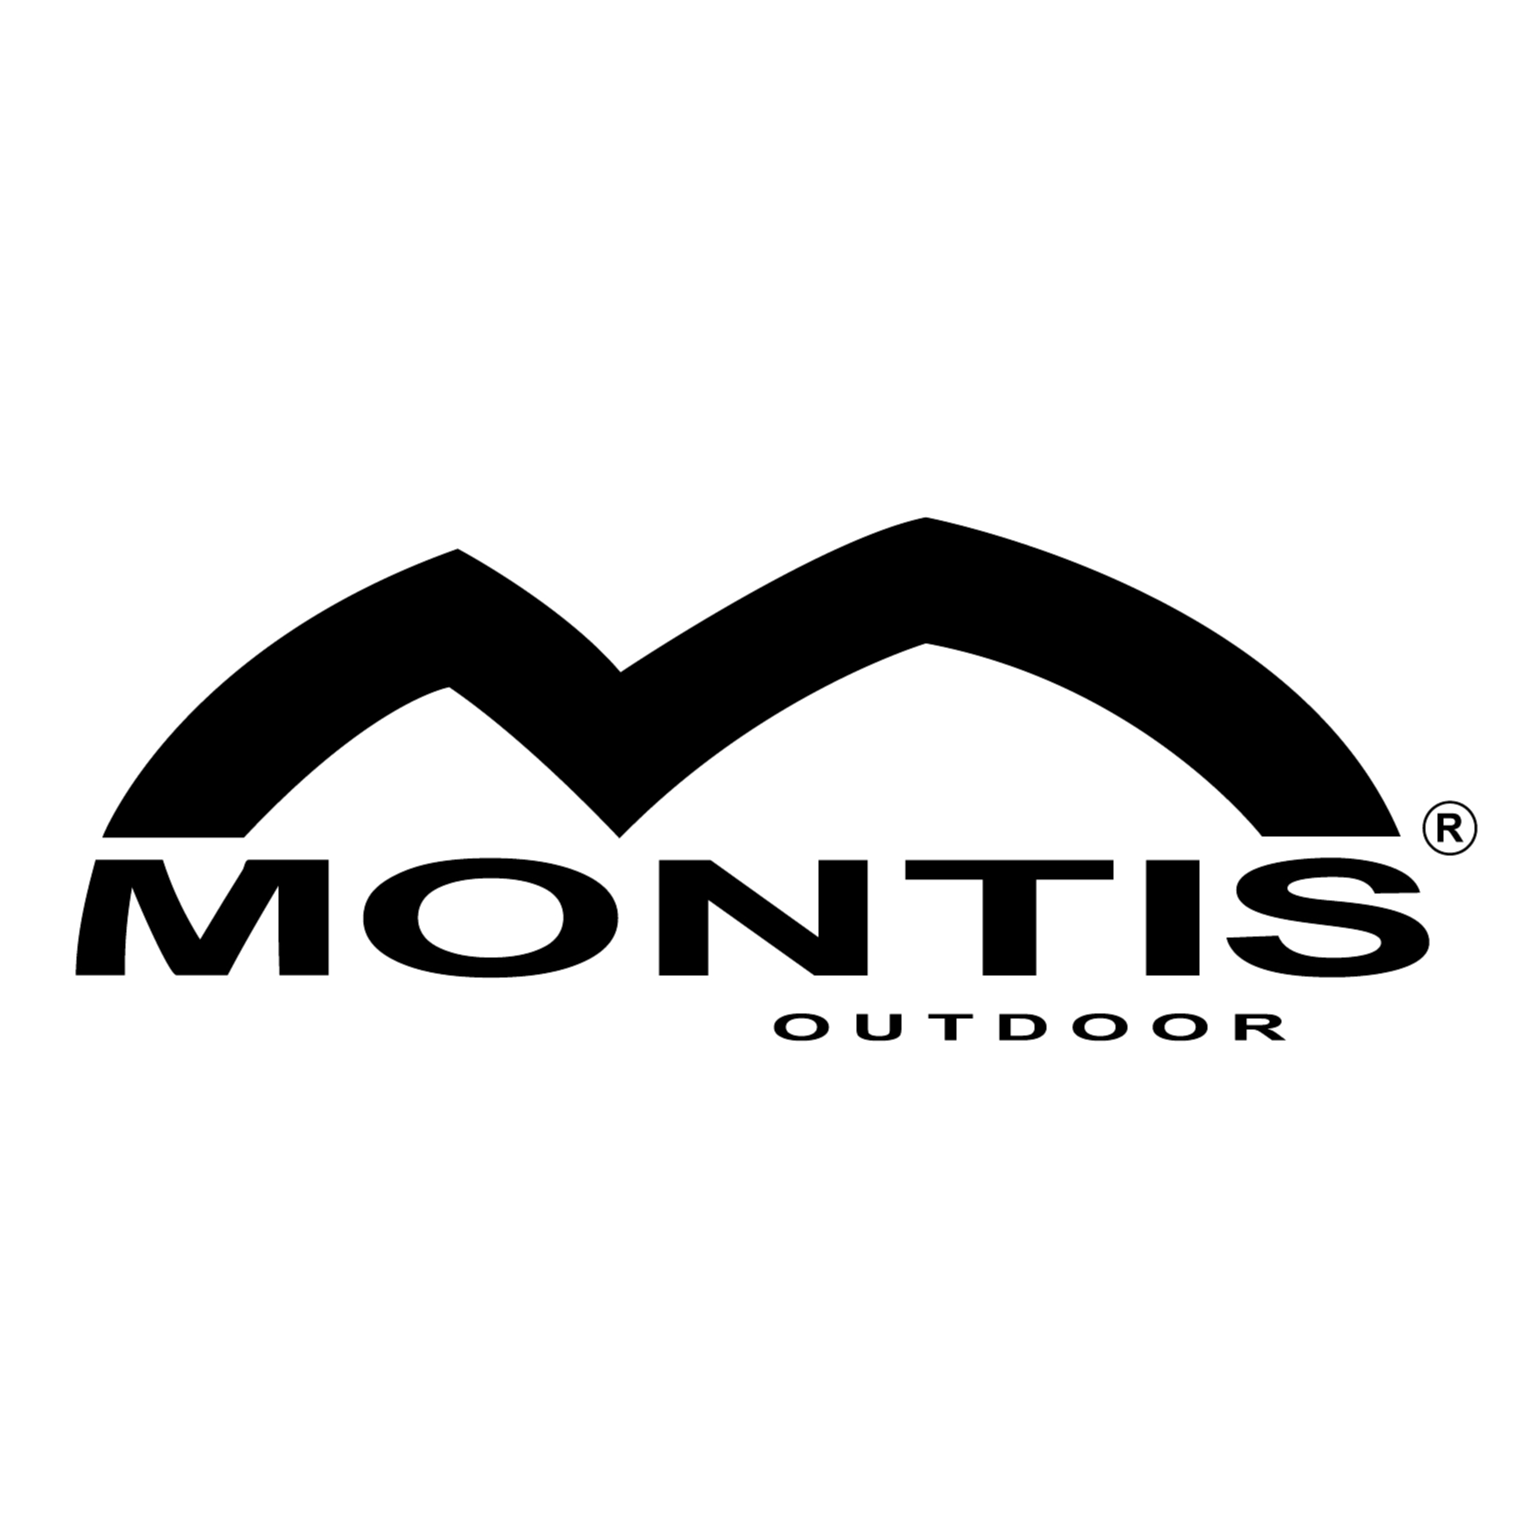 Montis Outdoor